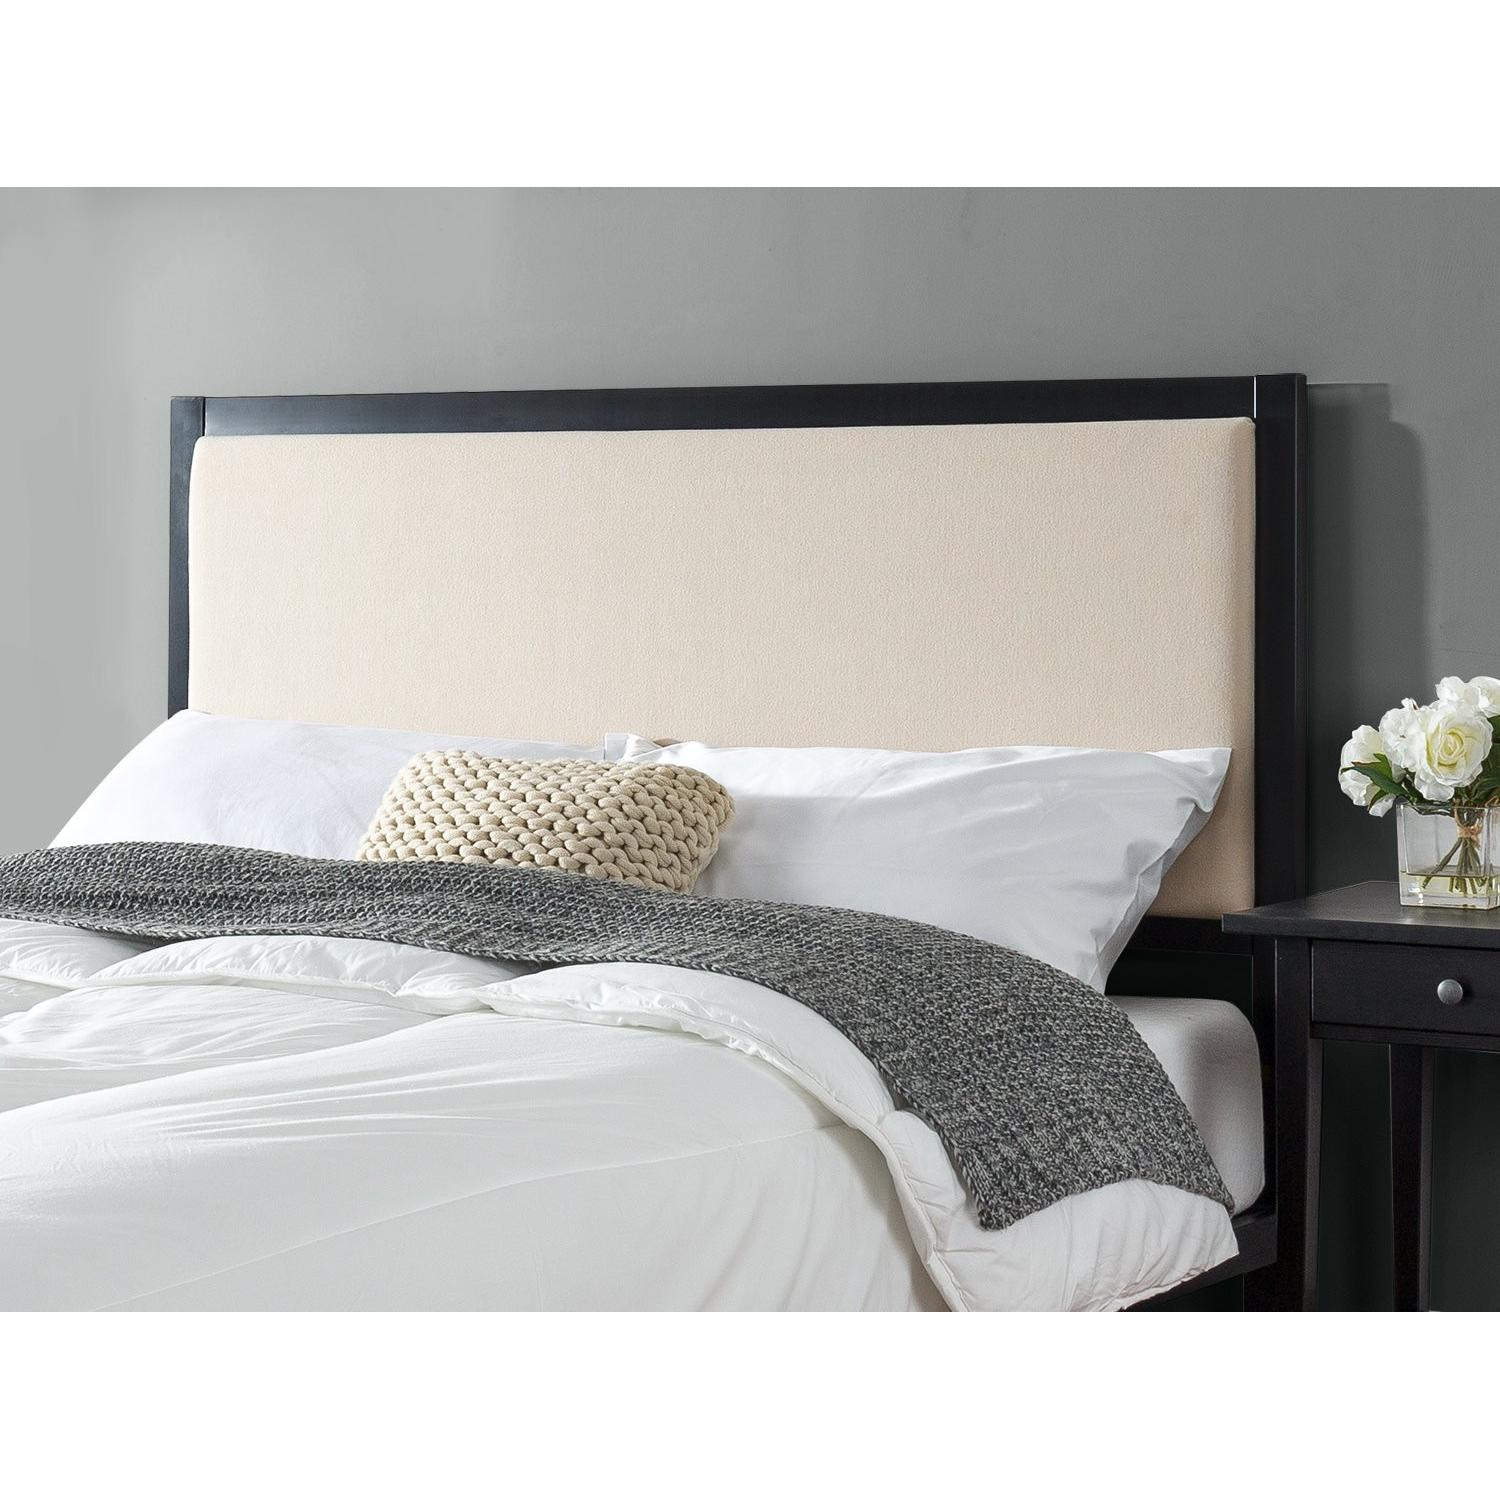 Zinus Kendal Taupe Upholstered Metal Twin Headboard - image-1